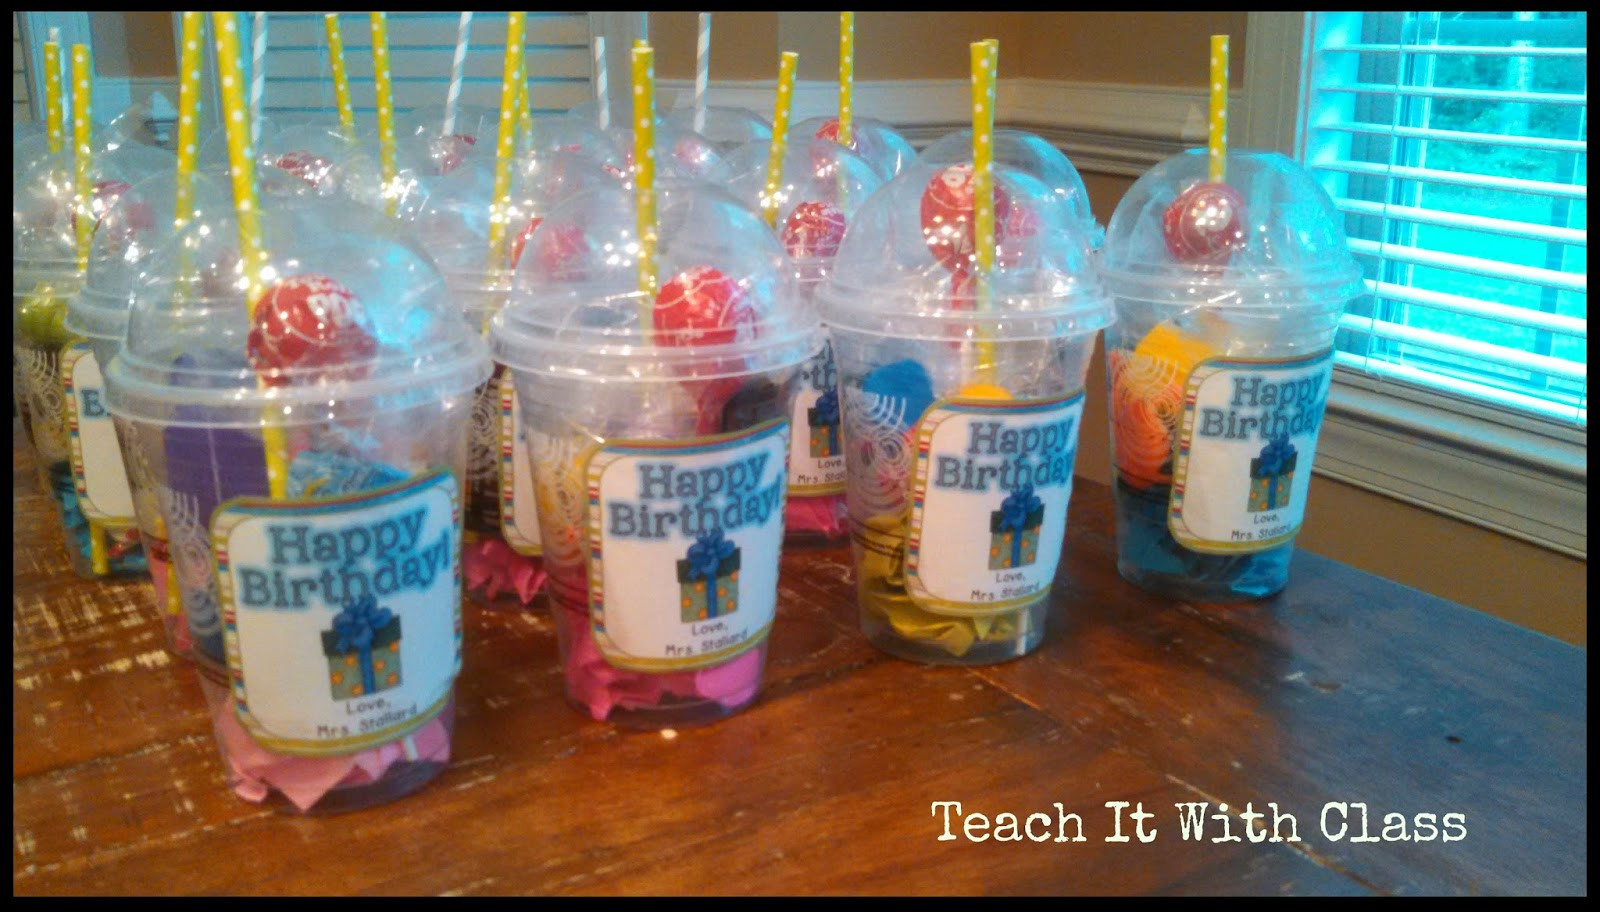 Best ideas about Class Gift Ideas . Save or Pin Teach it With Class Grab & Go Birthday Gifts Now.